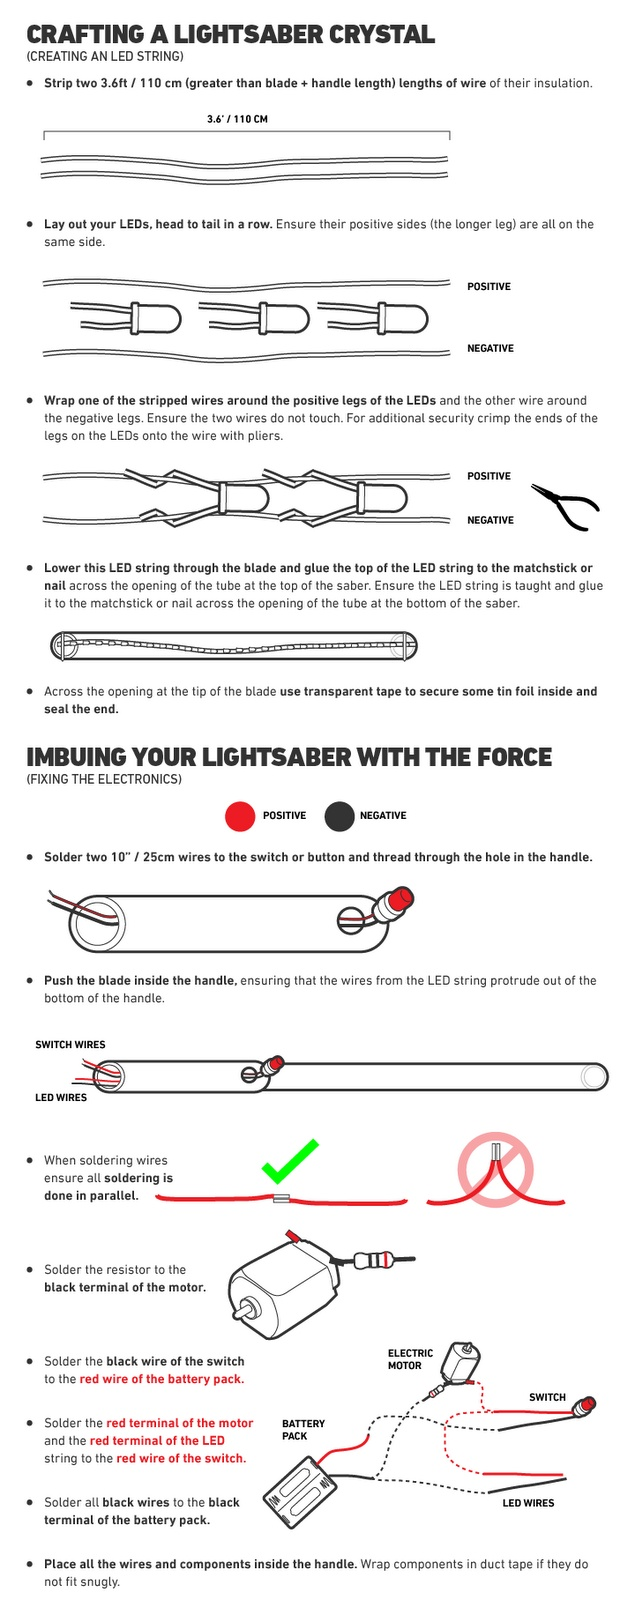 How to make your own Lightsaber Part 3